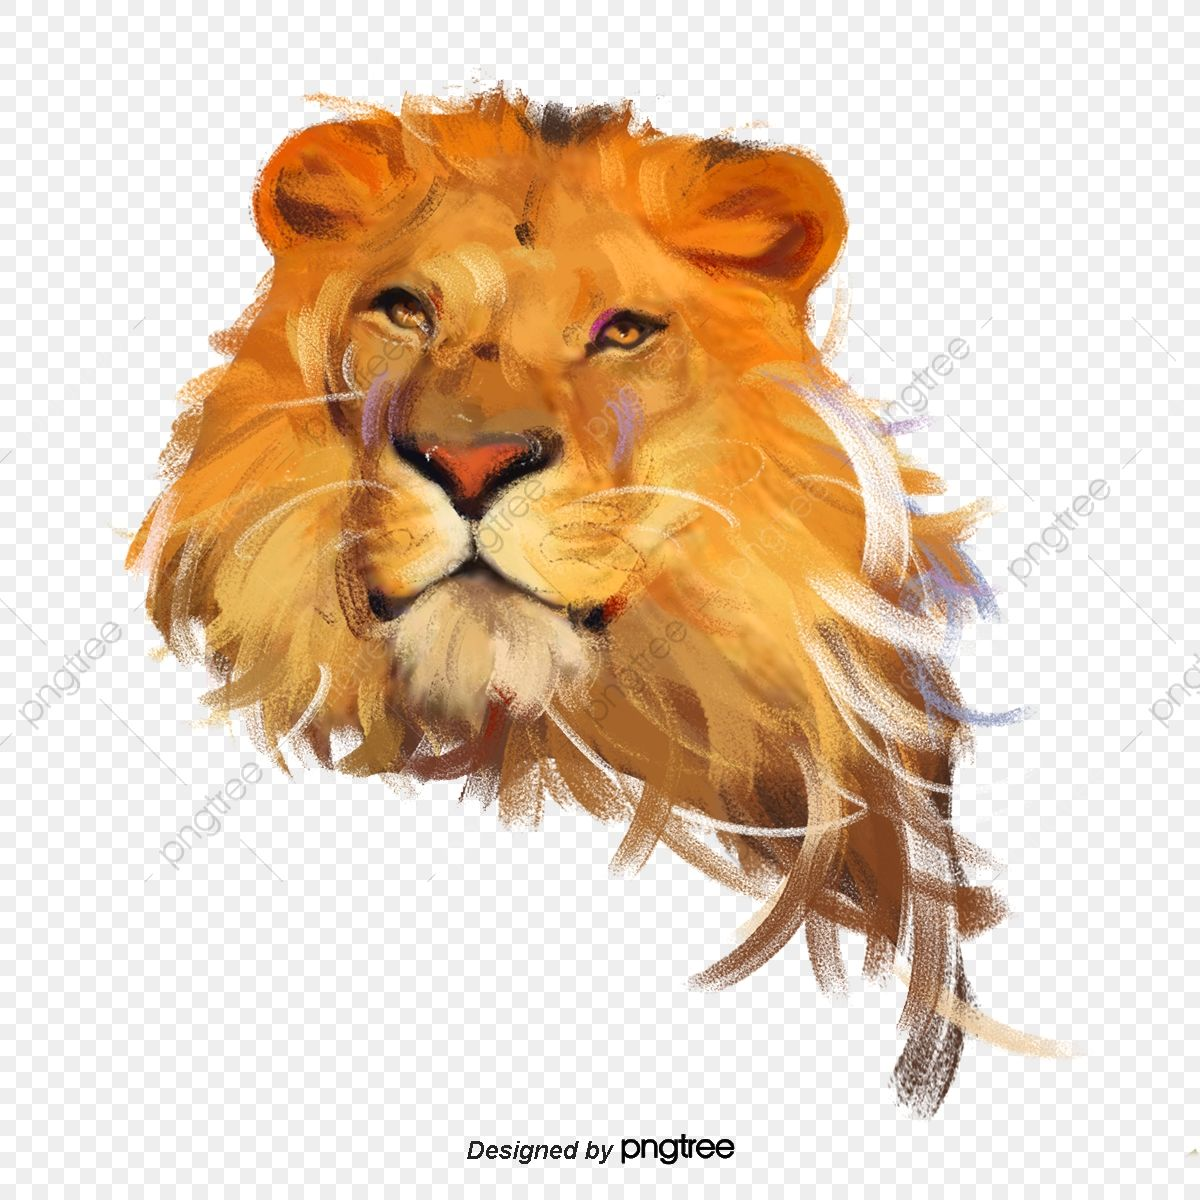 Lion Element Lion King Clipart King Of Animals Element Png Transparent Clipart Image And Psd File For Free Download In 2021 Lion Illustration Tribal Lion Animal Clipart